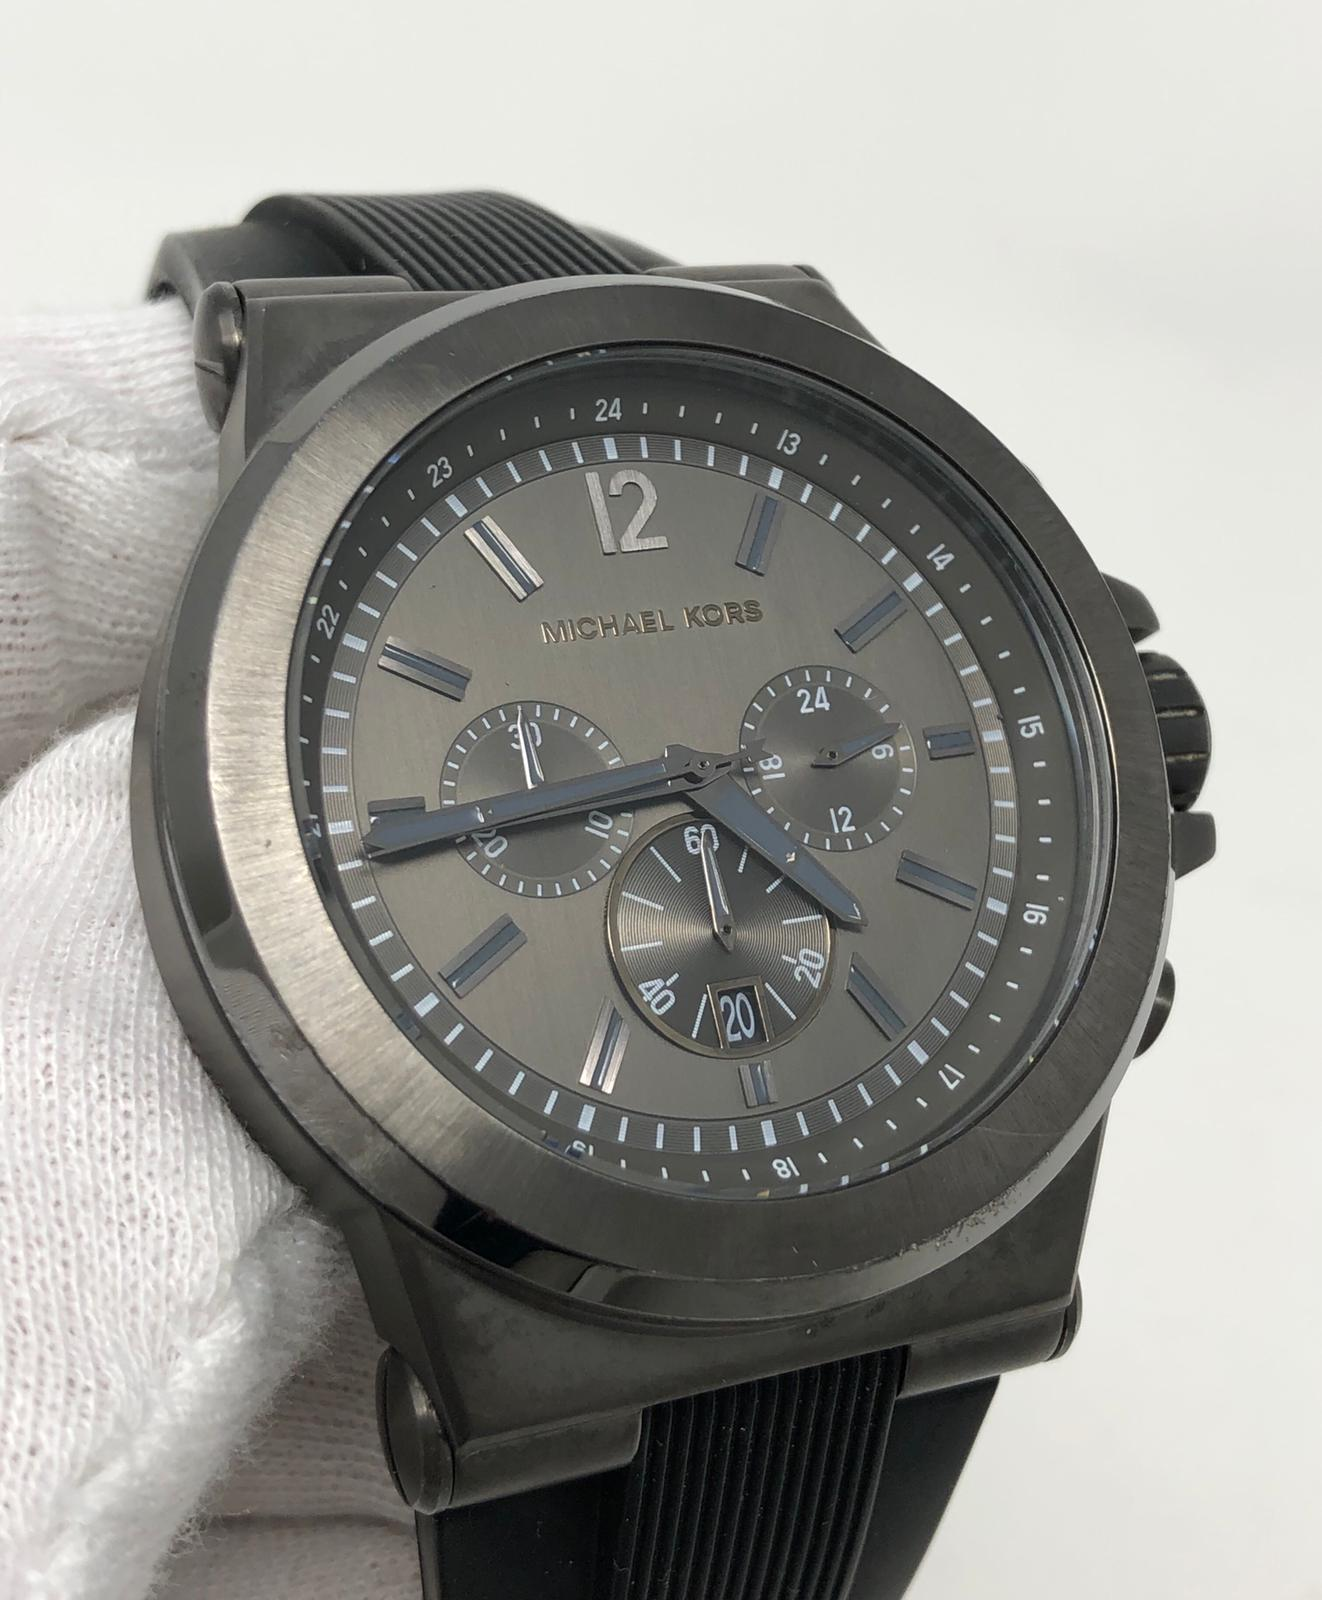 630b0312caa1 Michael Kors Dylan Chronograph Gray Dial Black Silicone Mens Watch MK8206  SD9 691464757465